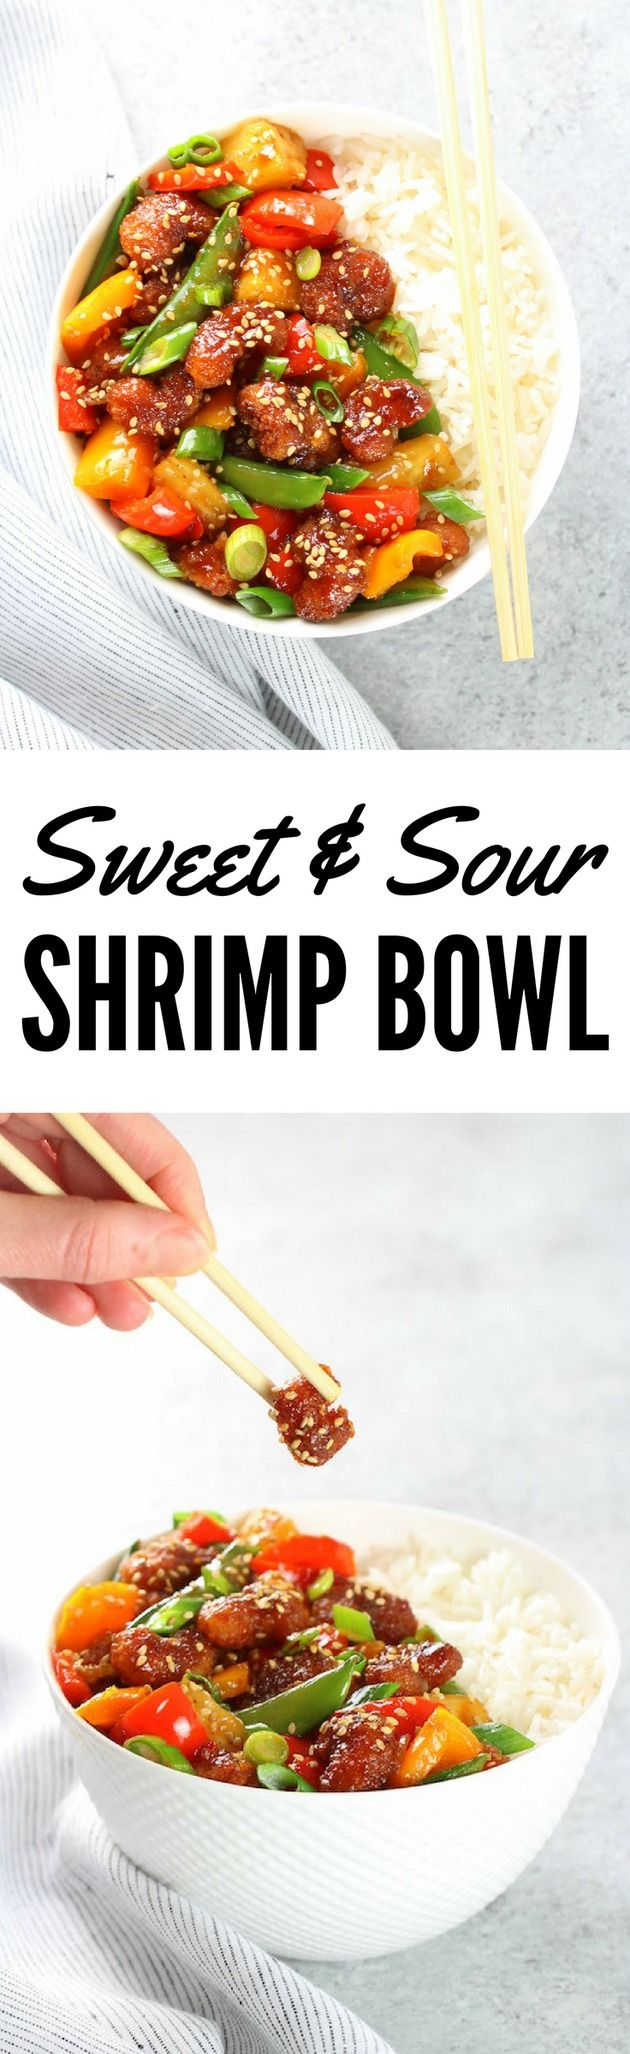 Sweet and Sour #Shrimp Bowl: a family-friendly dinner the pickiest eaters will love!  | Asian | Seafood | Easy Weeknight Dinner Recipe | http://tasteandsee.com via @h_tasteandsee